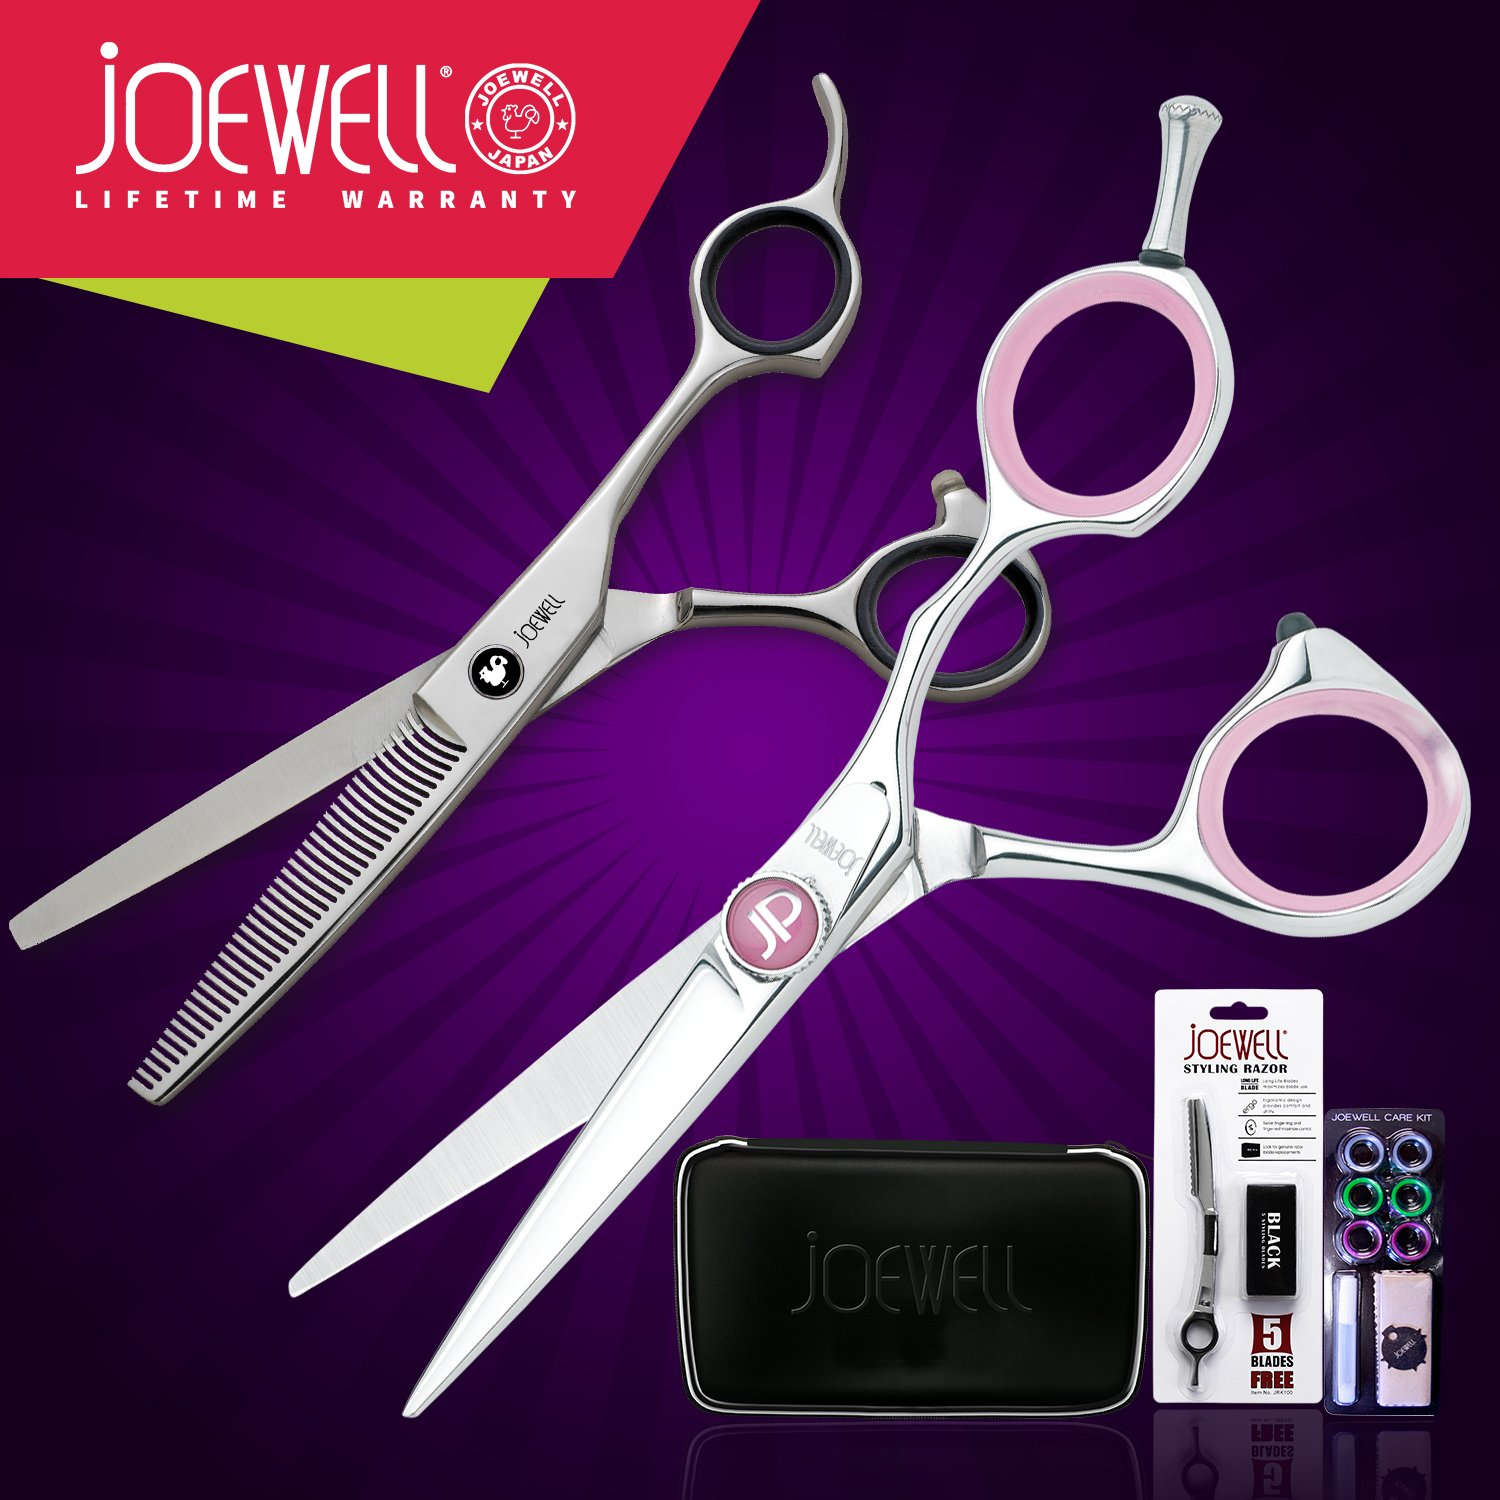 Joewell JP 5.5 Shears / Scissors + Free Thinner & More free ship professional hair double thinning scissors thinner high quality teeth shears with 30 teeth 6 japanese 440c